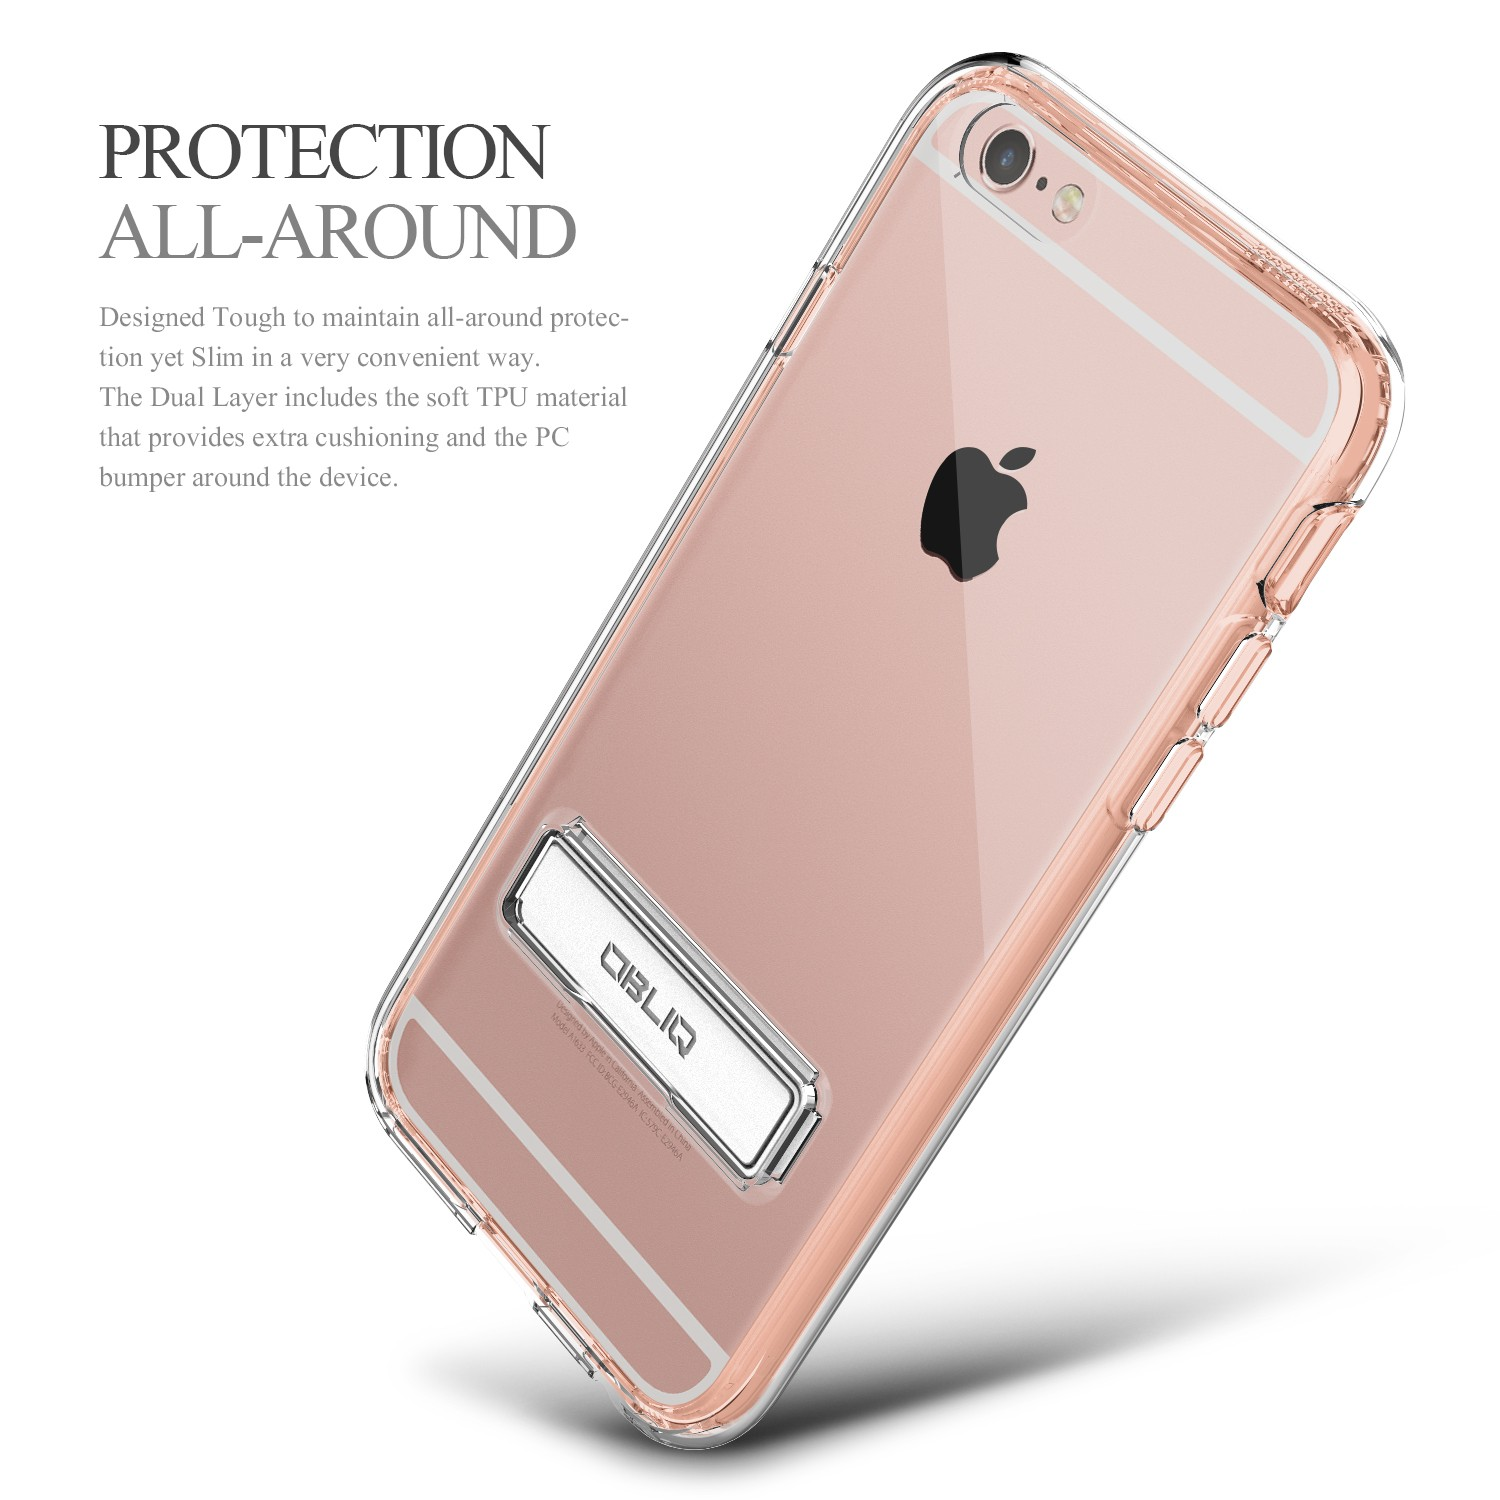 obliq naked shield iphone 6 6s case rose gold. Black Bedroom Furniture Sets. Home Design Ideas